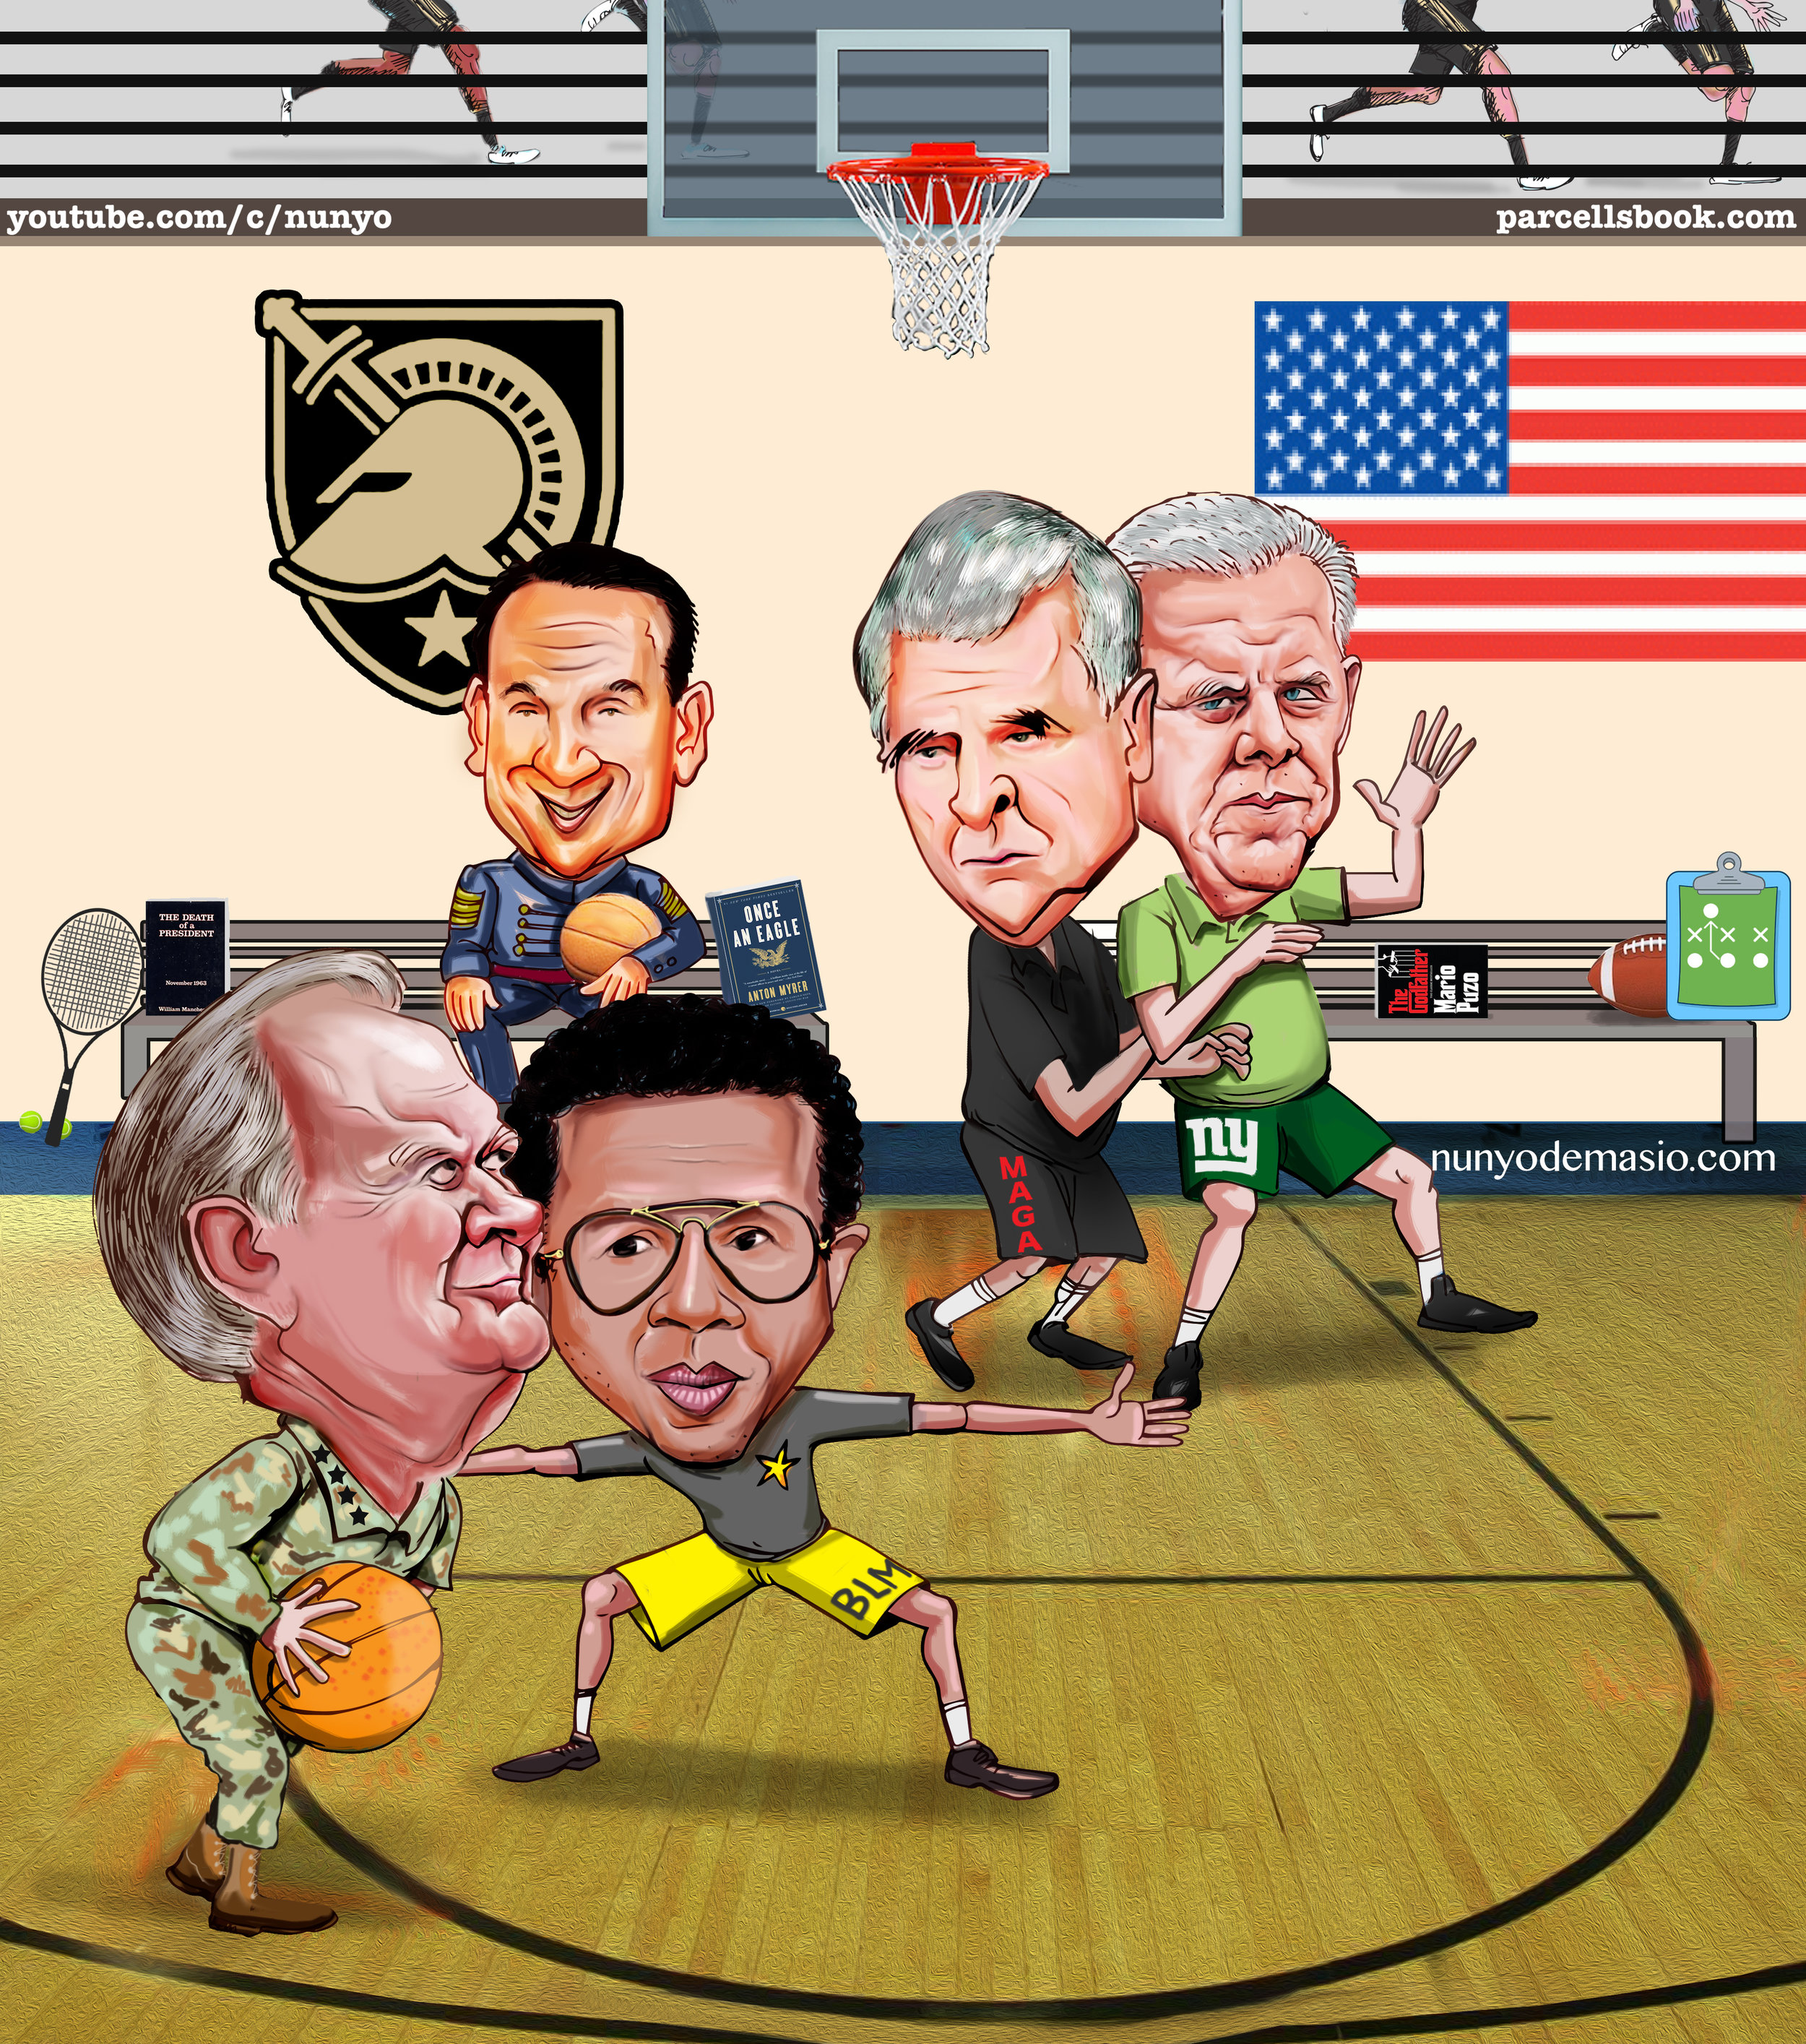 THROWBACK: West Point, NY. 1967: Bill Parcells and Norman Schwarzkopf versus Arthur Ashe and Bobby Knight in pick-up basketball. Make 'em, take 'em for 10 buckets. The future Coach K witnessed it all. What a sight!  Watch this video Q&A of David Stern to learn more about the legendary hoop games as detailed in the Parcells book.